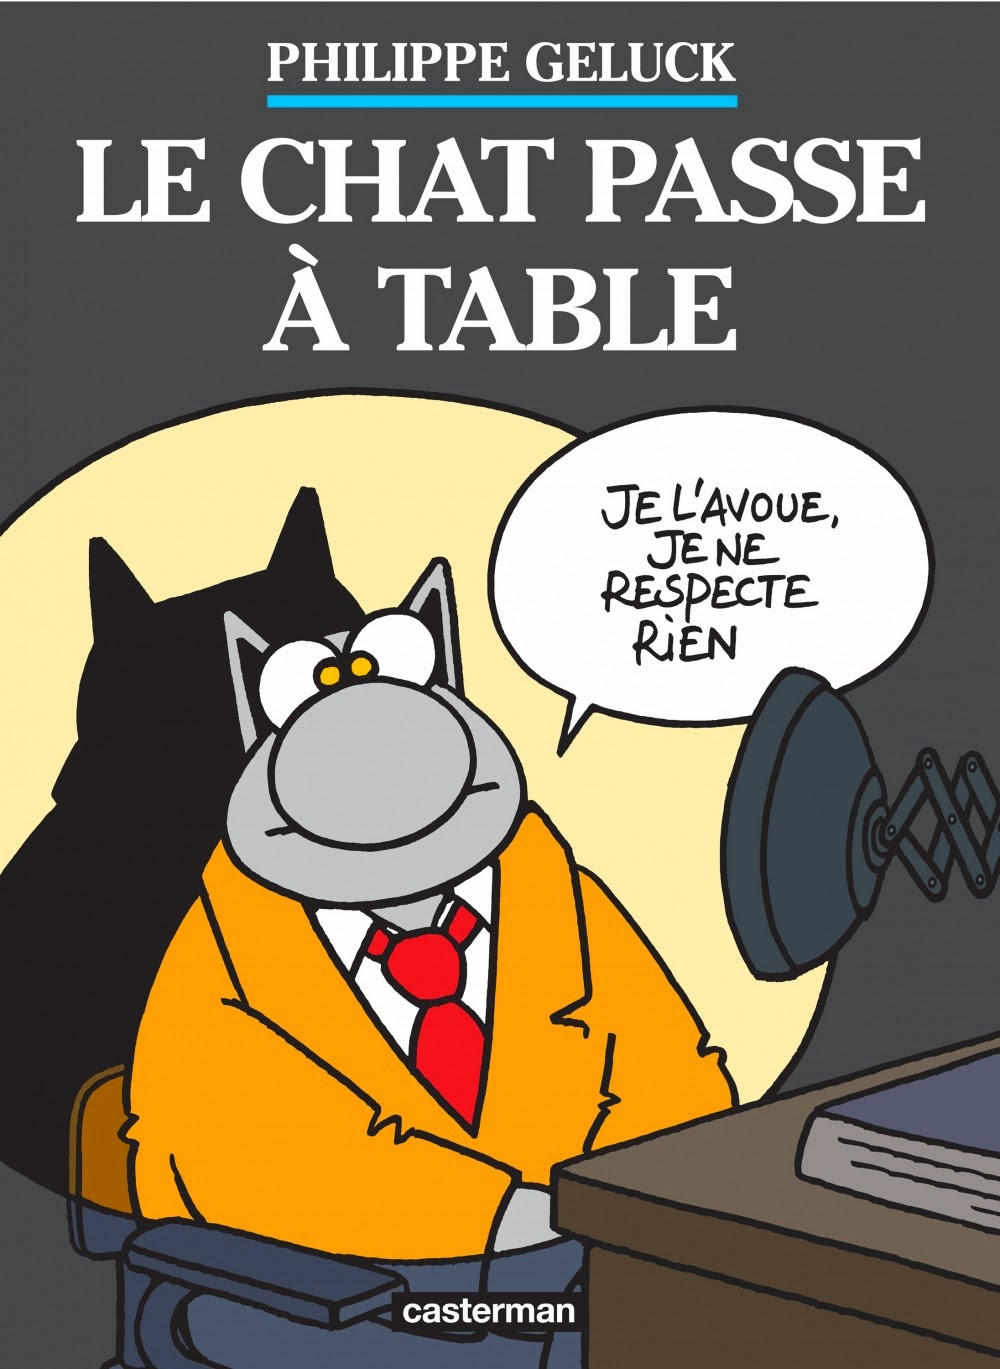 http://antredeslivres.blogspot.fr/2015/02/le-chat-tome-19-le-chat-passe-table.html